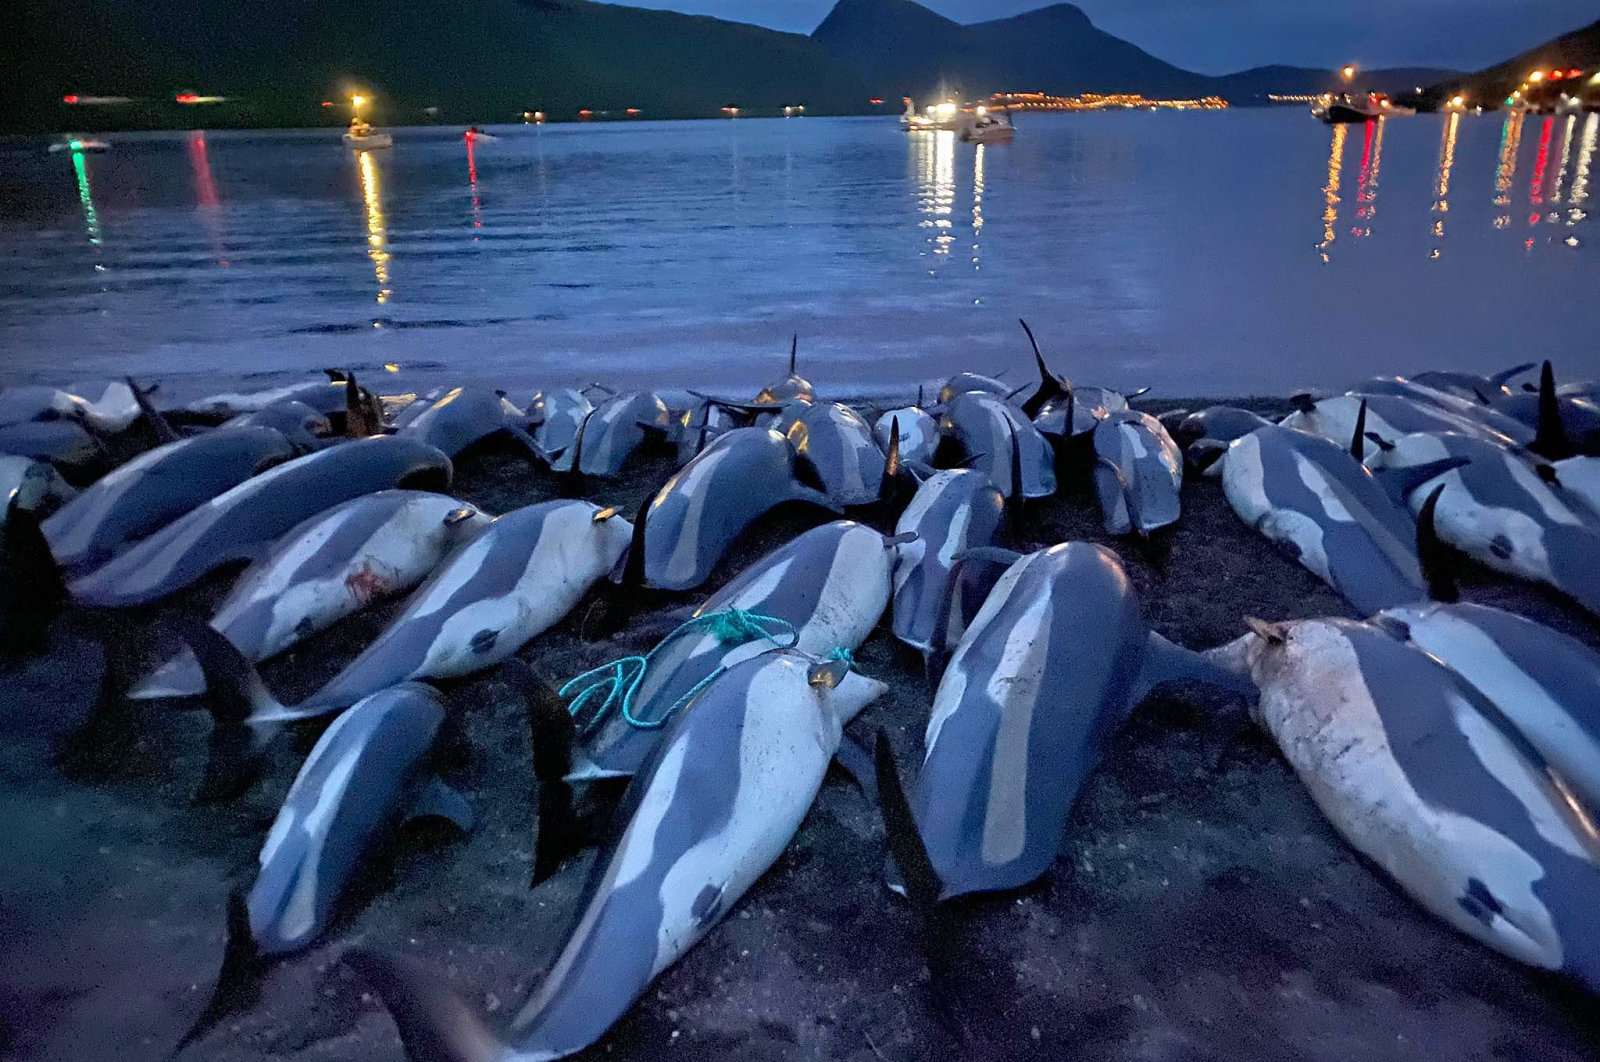 The carcasses of dead white-sided dolphins lie on a beach after being pulled from the blood-stained water on the island of Eysturoy, part of the Faroe Islands, Sept. 12, 2021. (Sea Shepherd via AP)